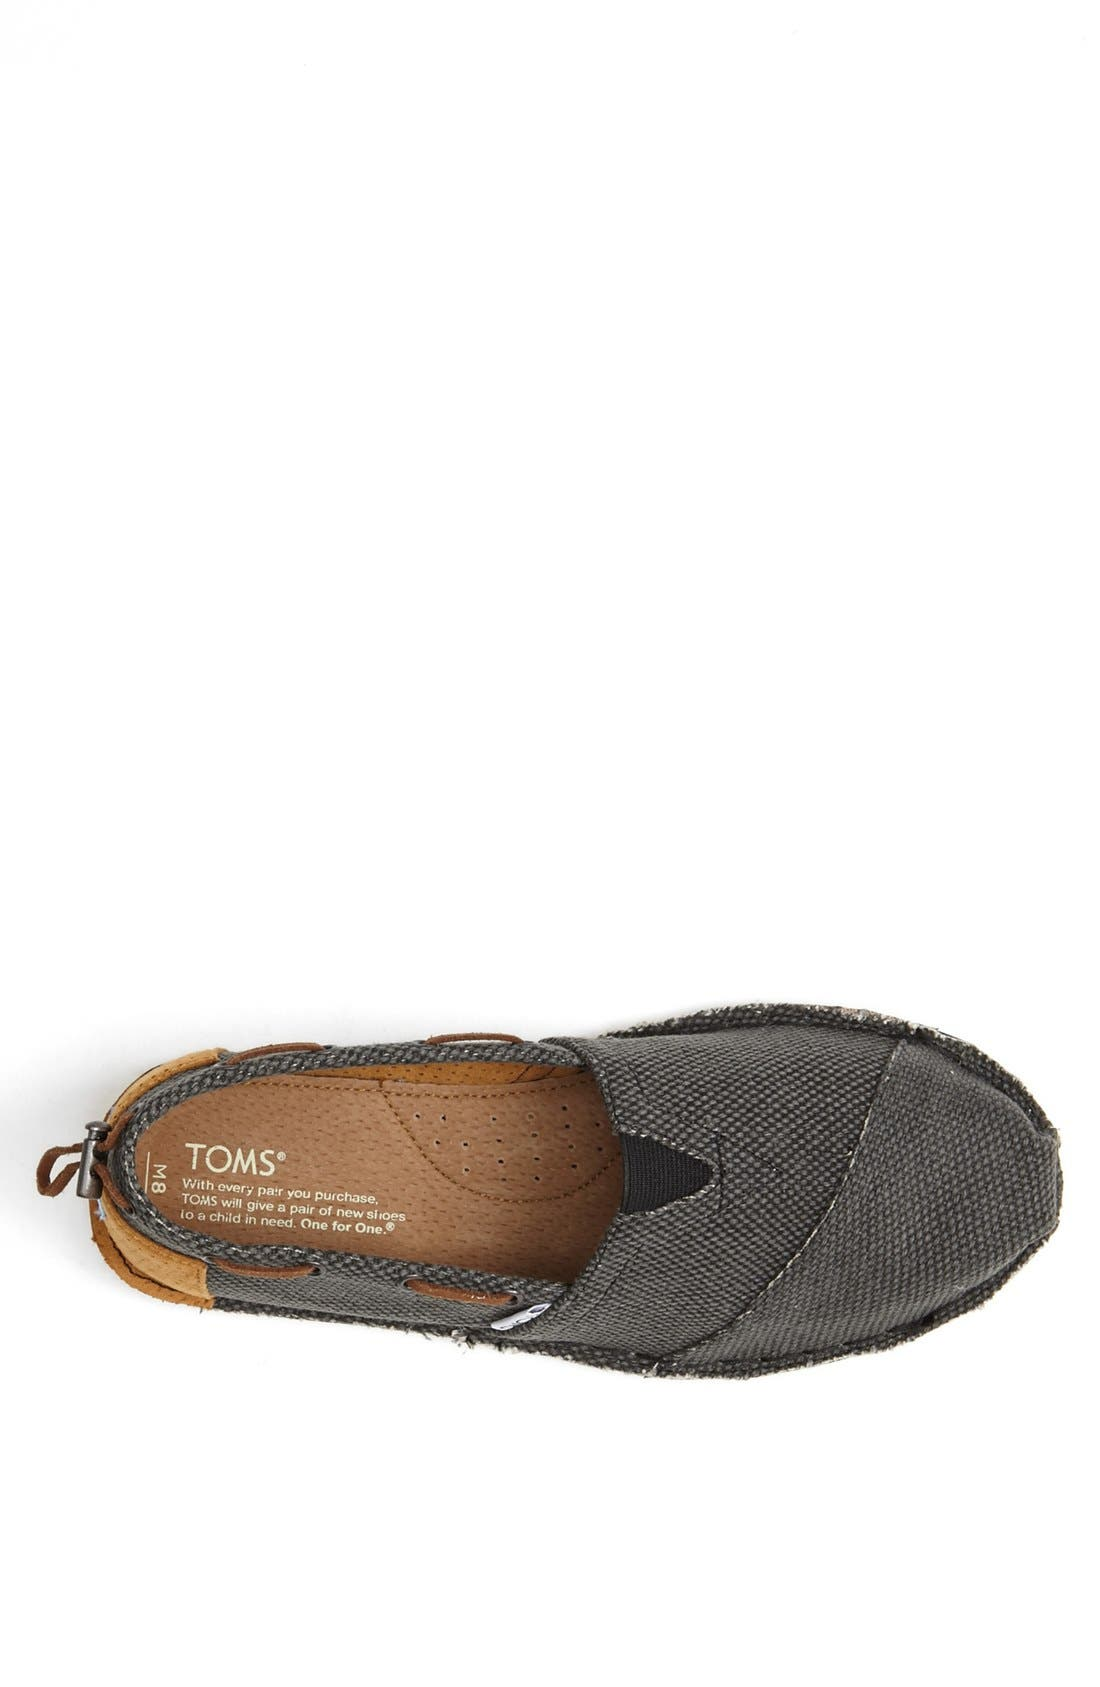 Alternate Image 3  - TOMS 'Bimini - Stitchout' Slip-On (Men)